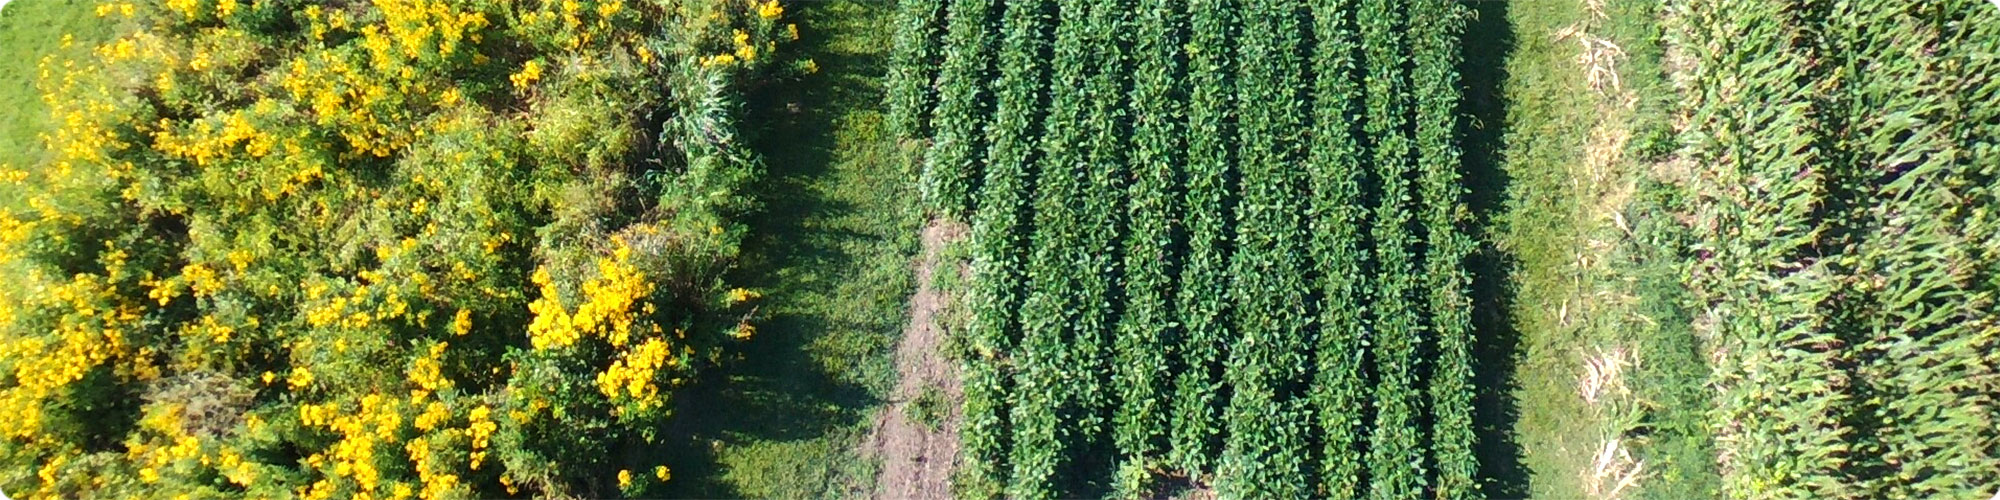 Trial plot management in agriculture